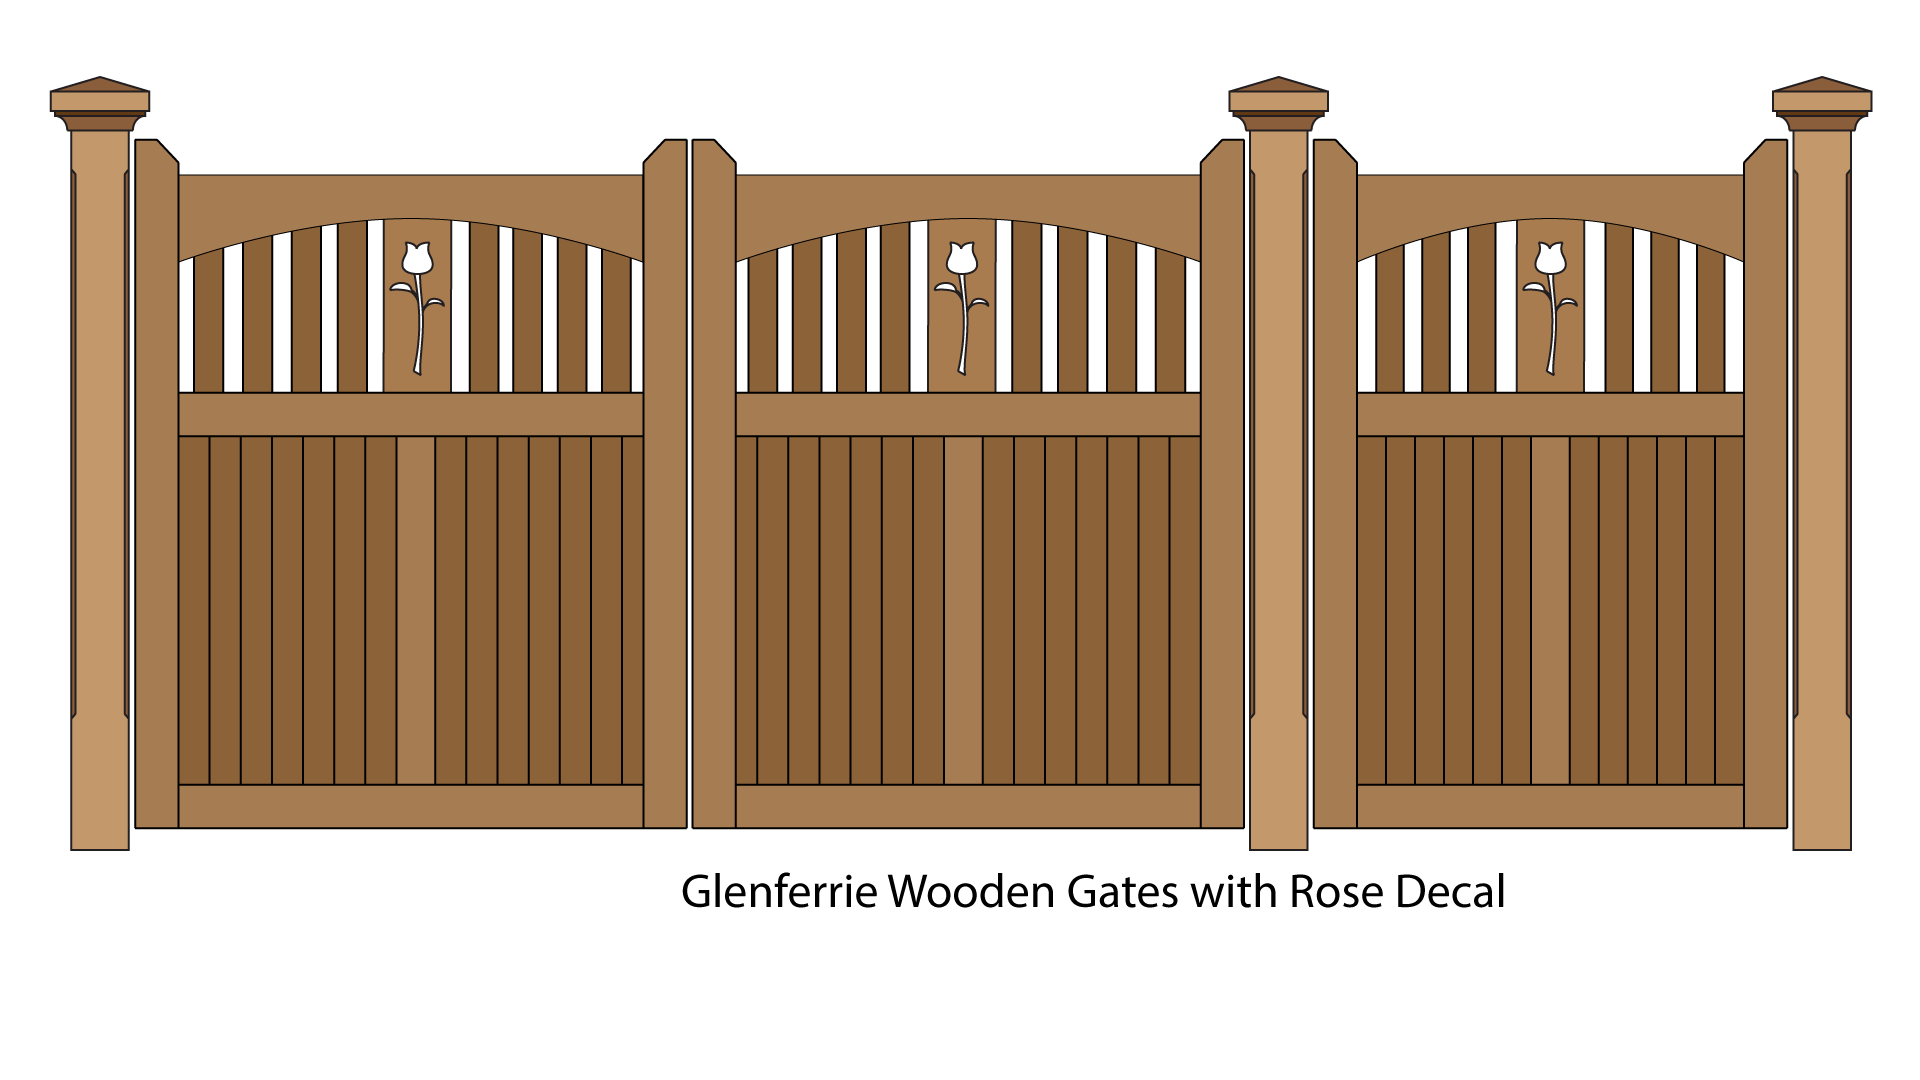 Glenferrie wooden gates with Rose decal